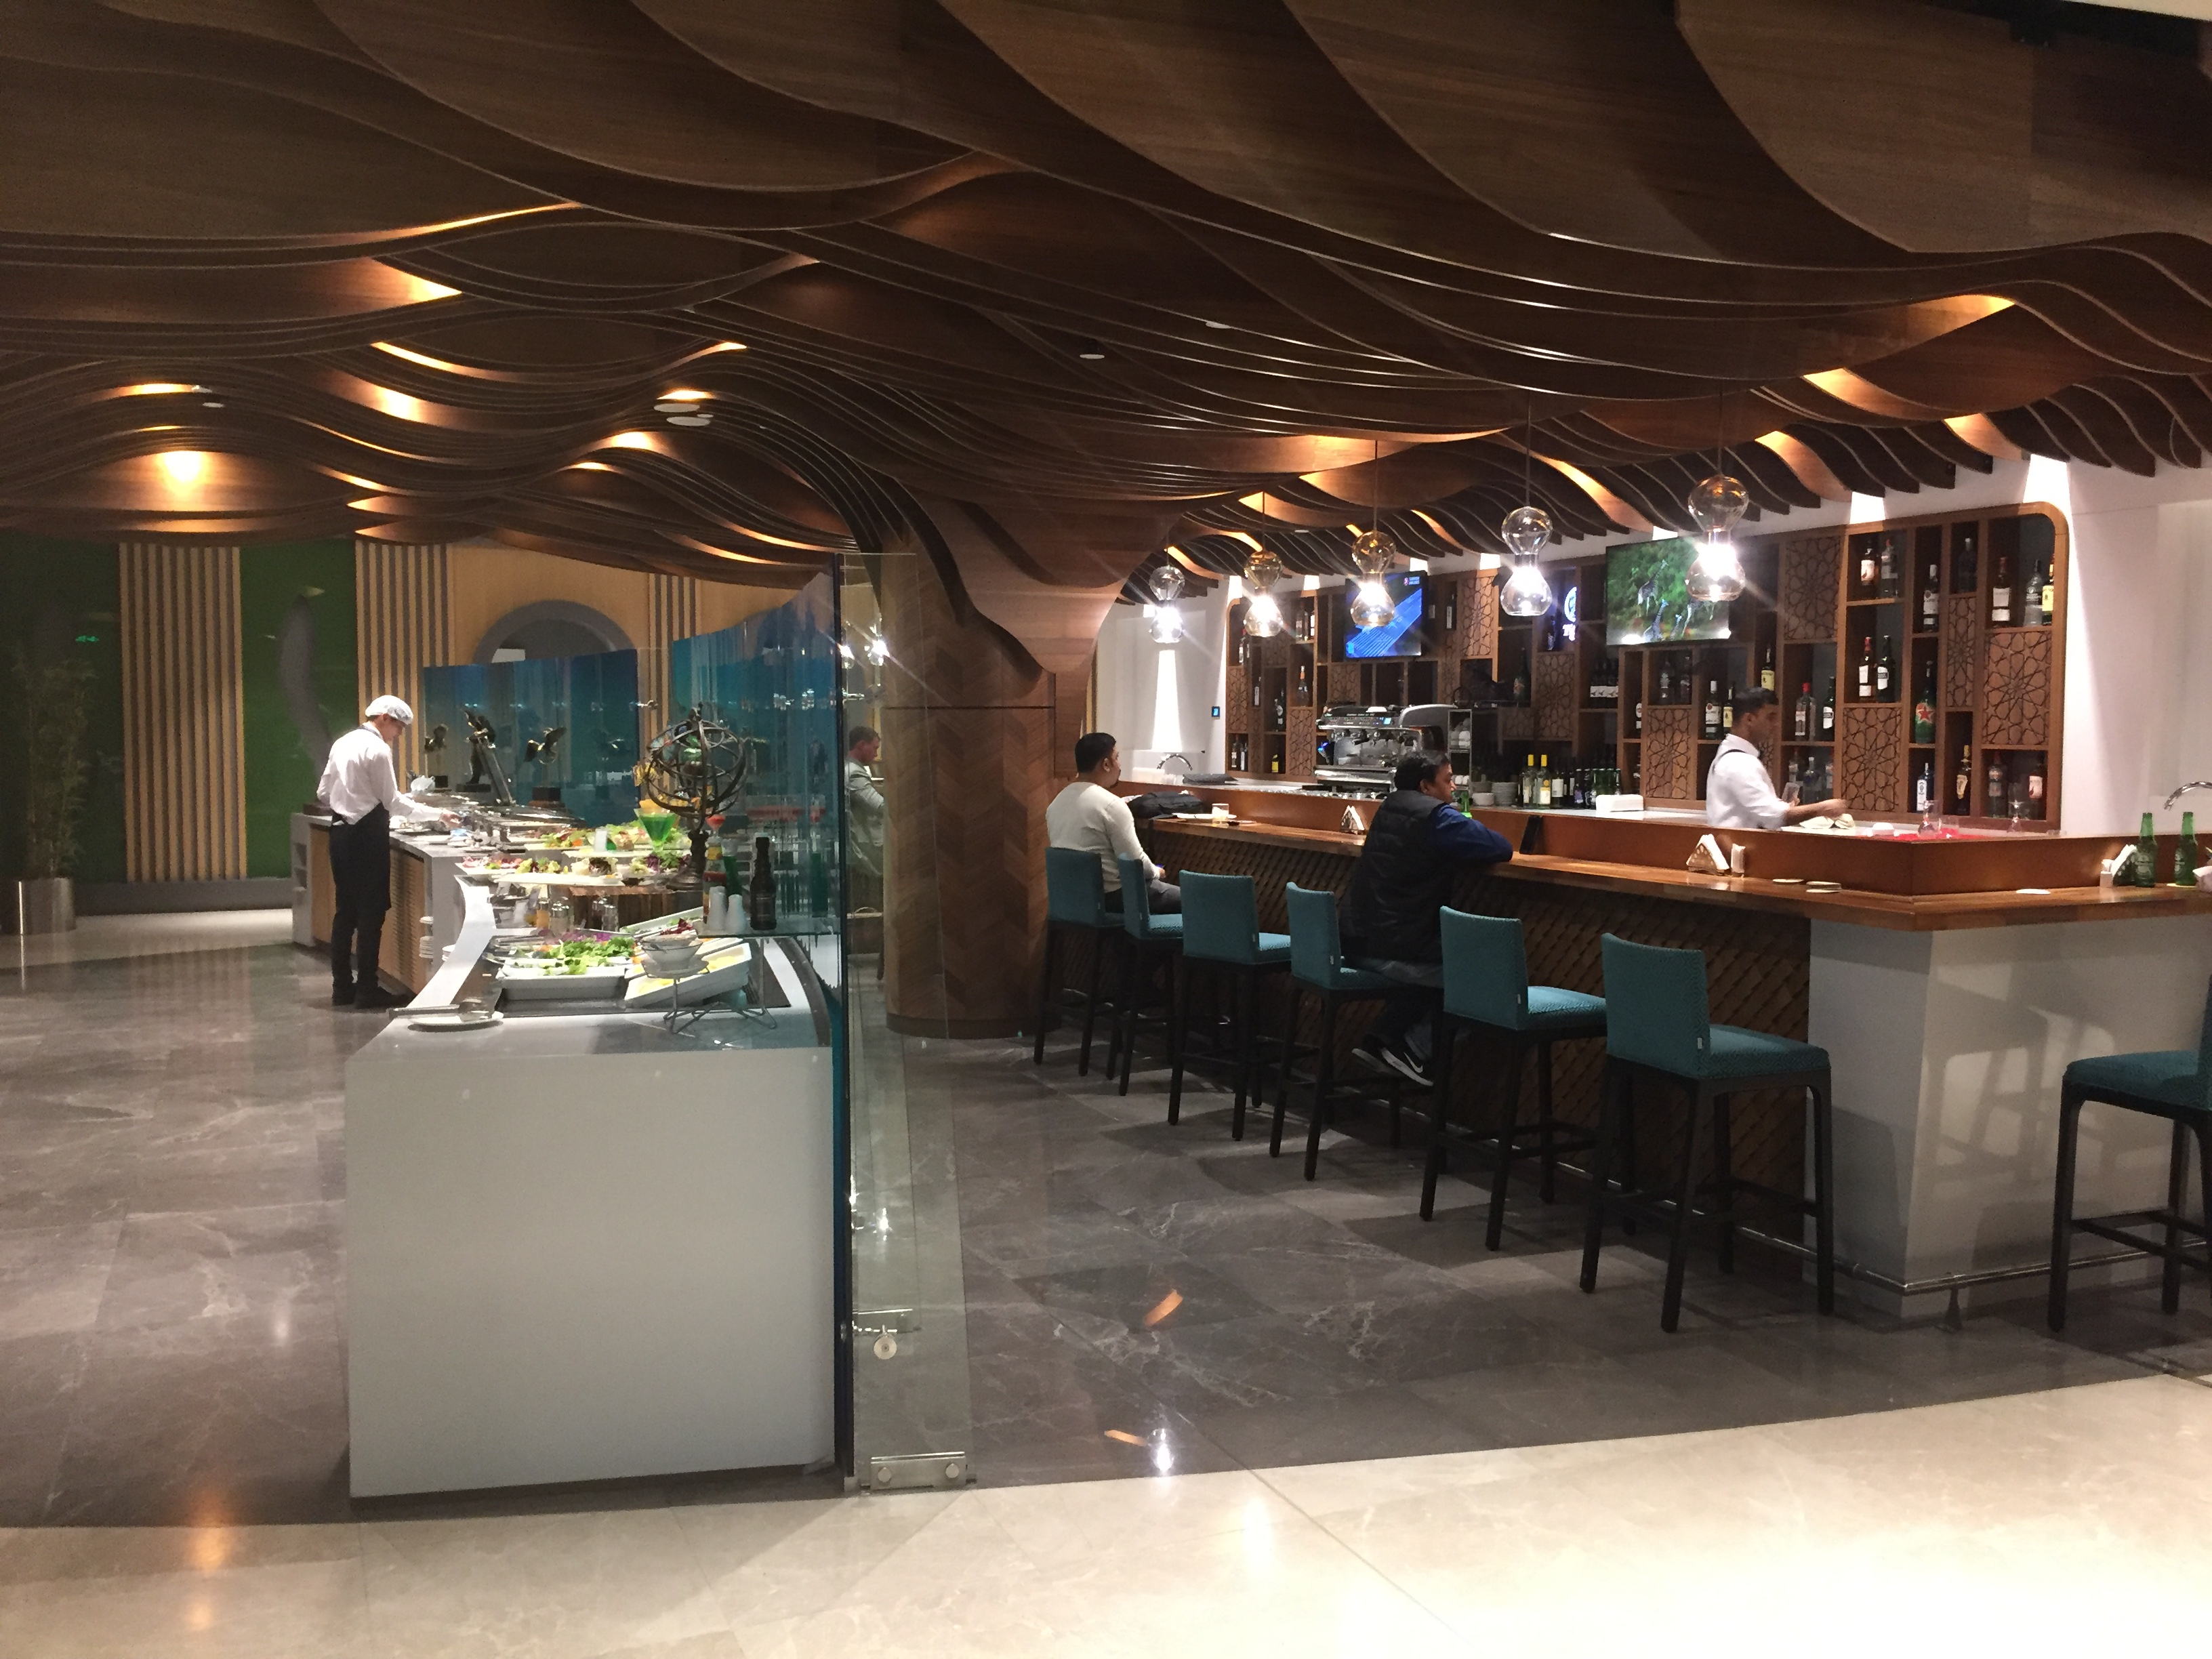 Buffet & bar area | The Primeclass Lounge Muscat